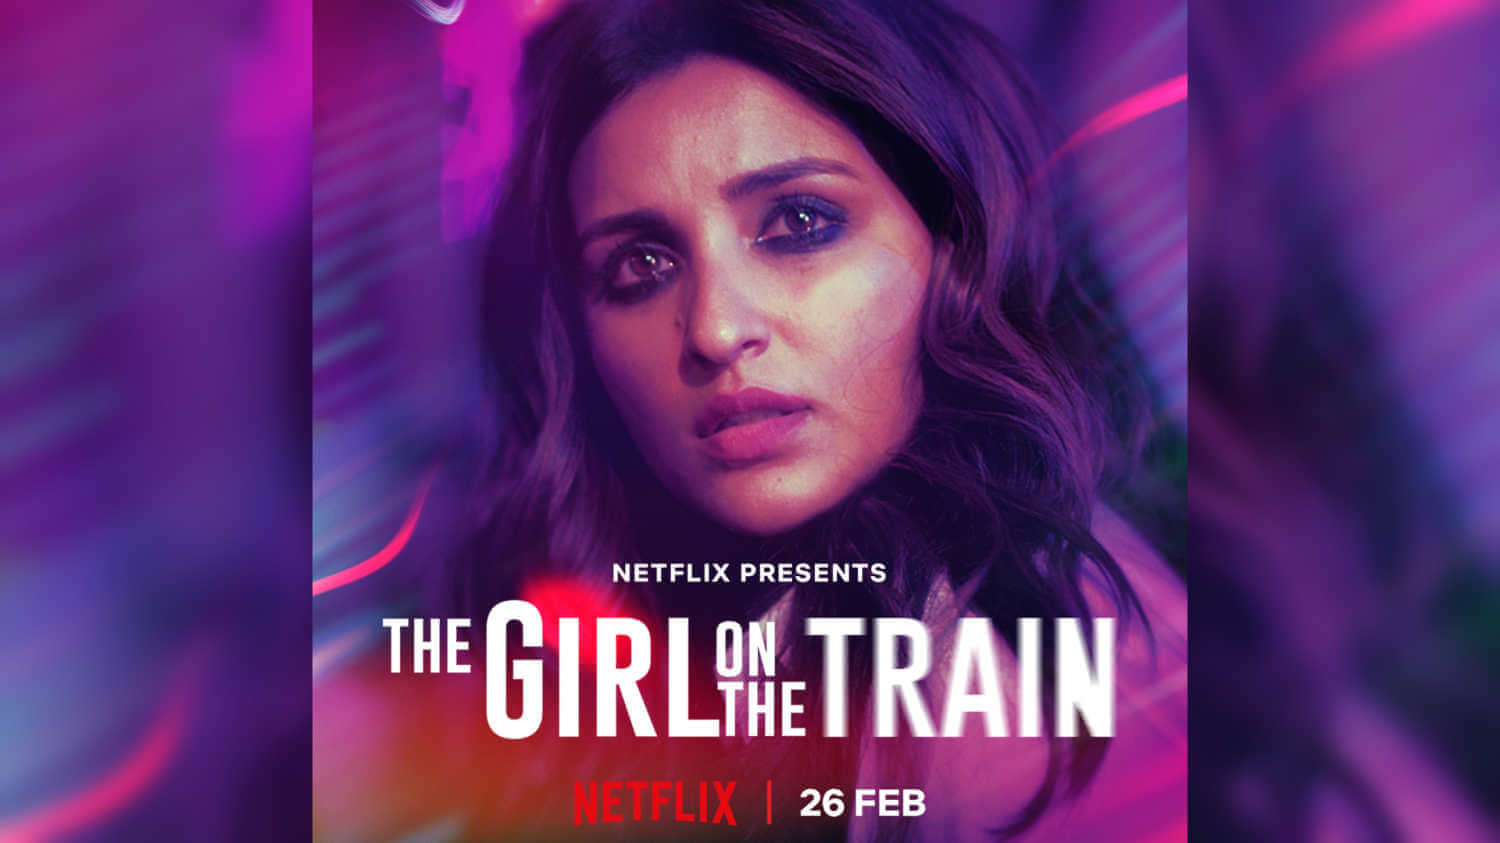 Priyanka Chopra gives thumbs up to Parineeti Chopra starrer The Girl On The Train teaser